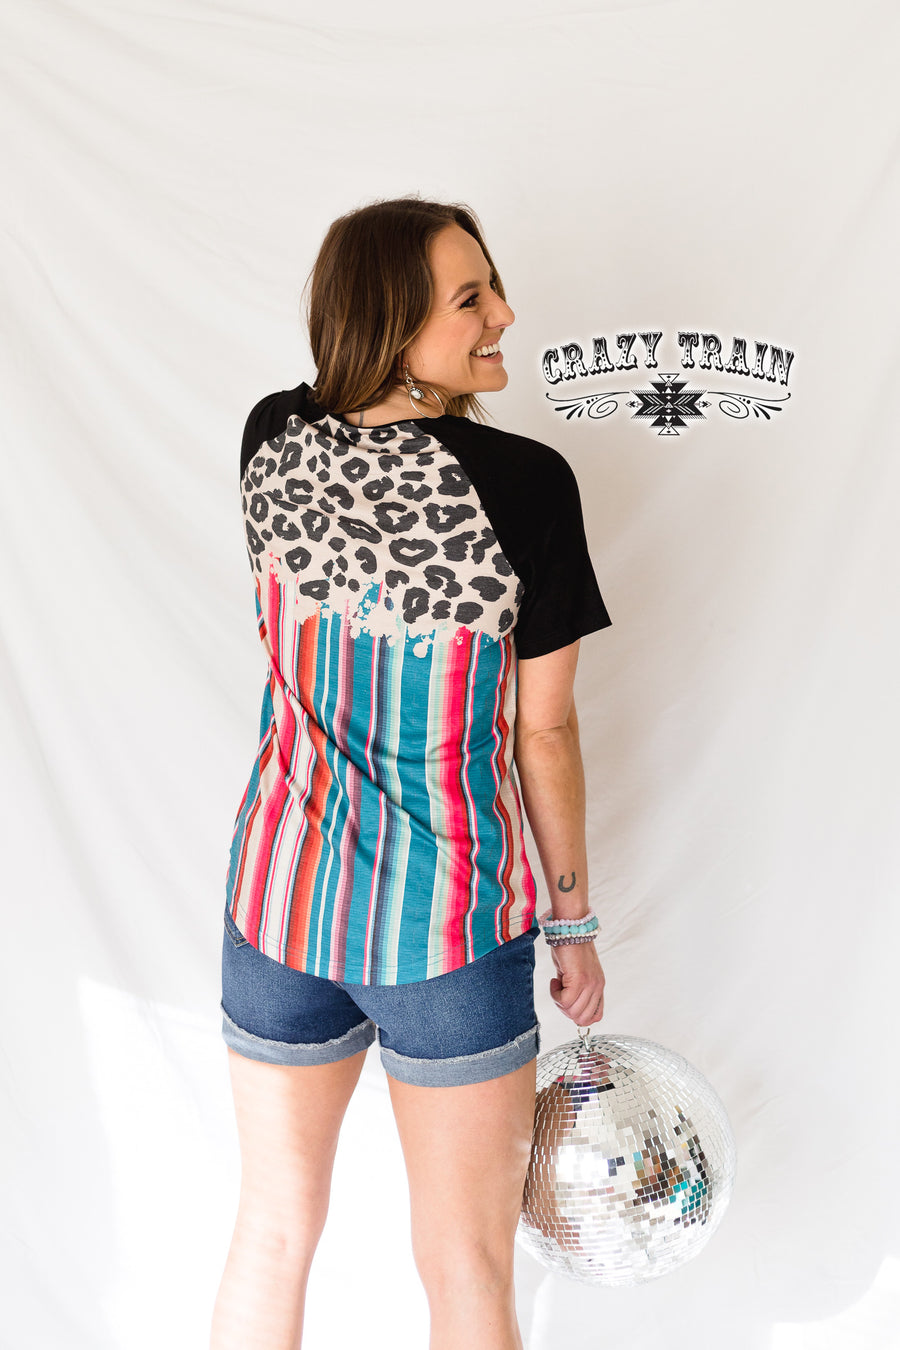 Party Crowd Serape Leopard Top